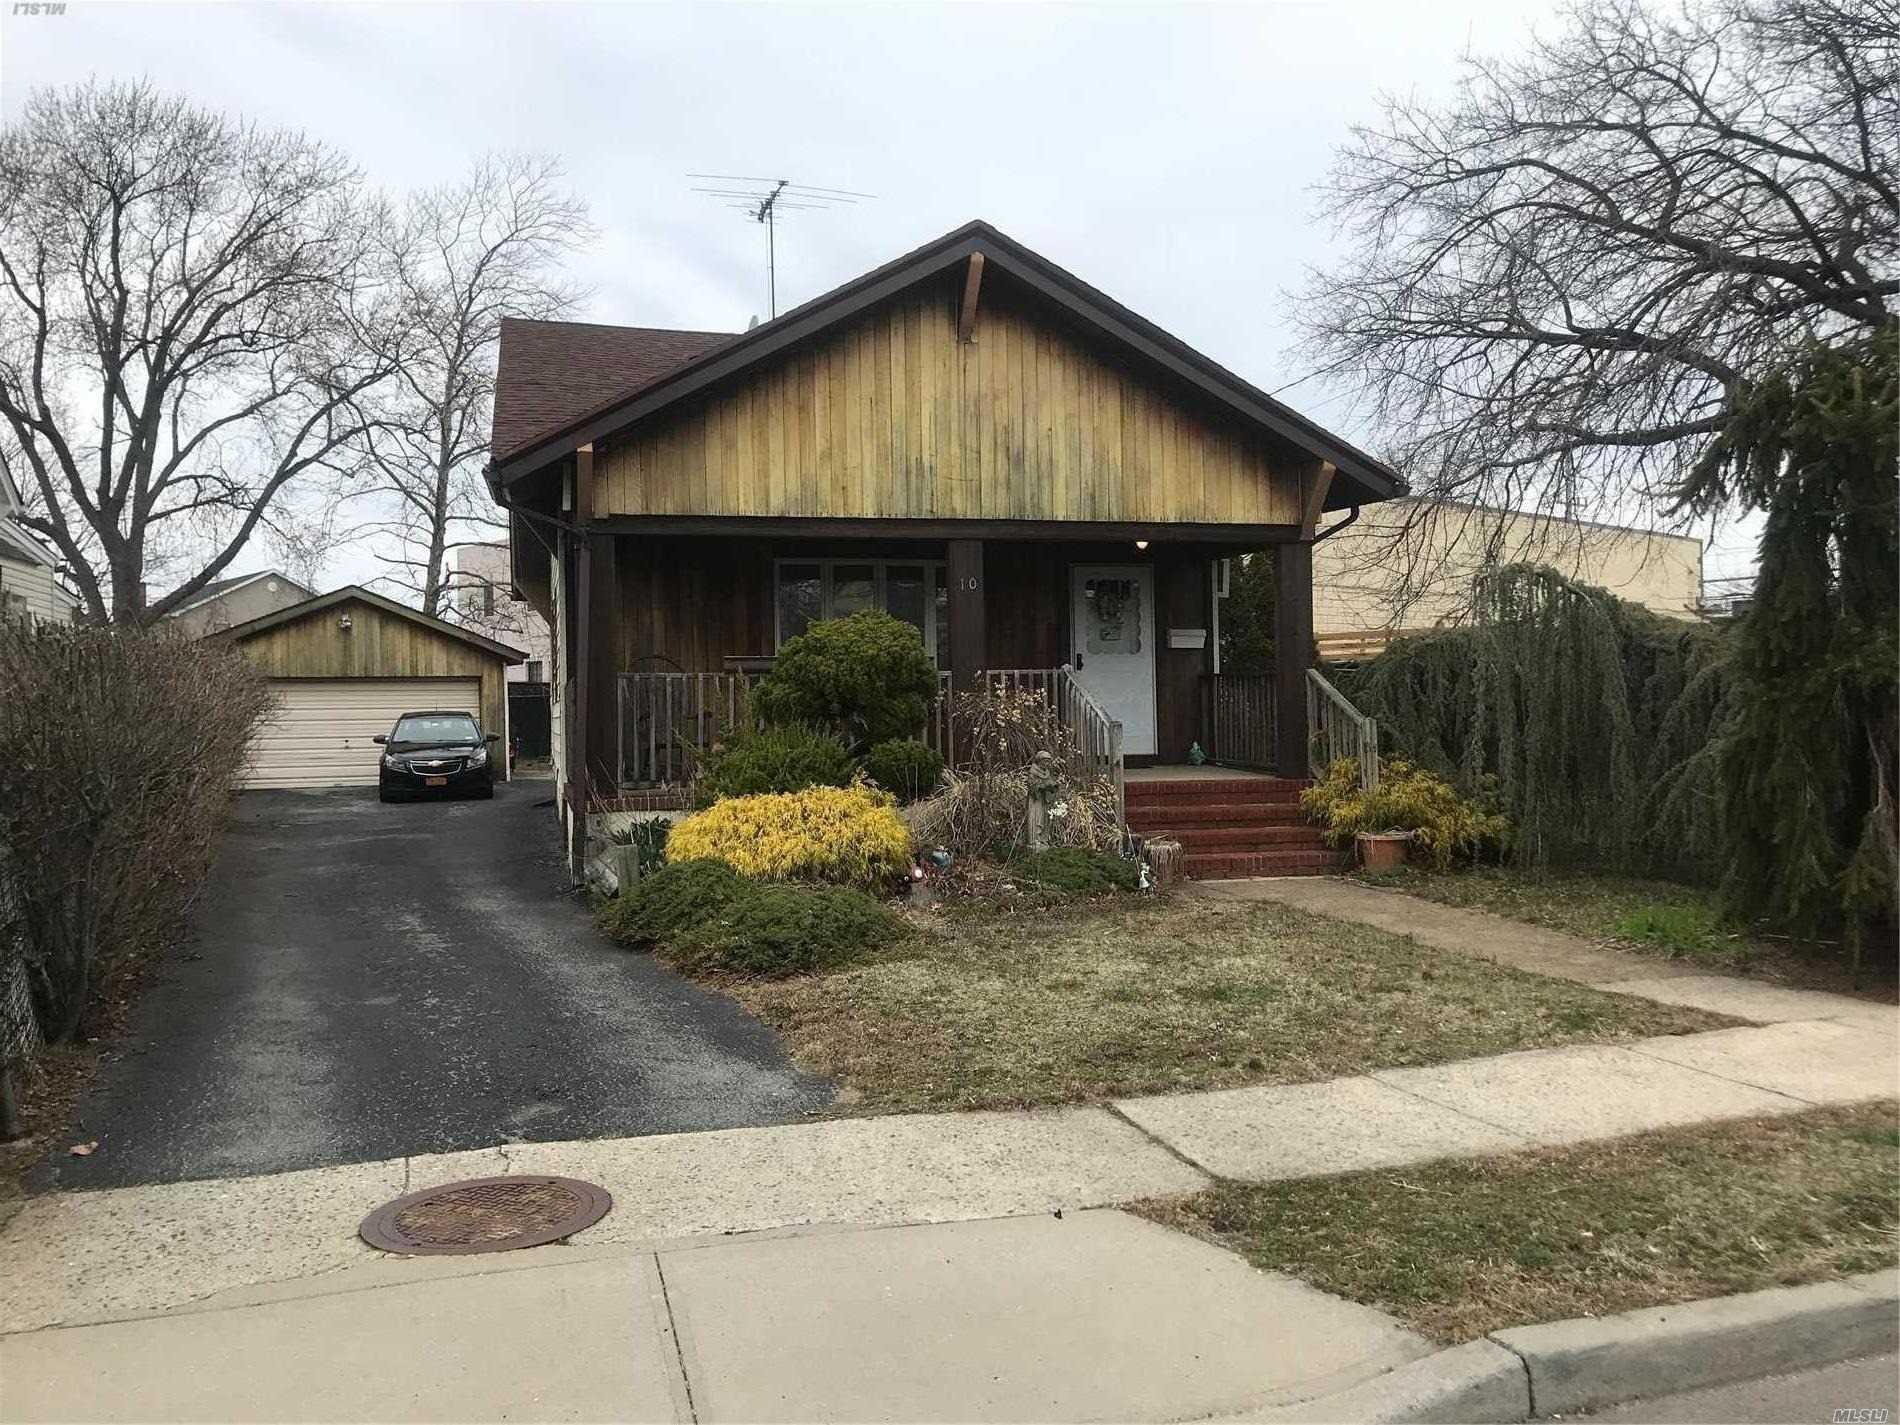 Amazing Opportunity to Get into Lynbrook S.D 20, Priced to Sell Quickly. Perfect Starter Home. Located On a Great Property With Plenty of Room for Expansion. Make This Home your Own! Tax Grievance Has Been Filed.